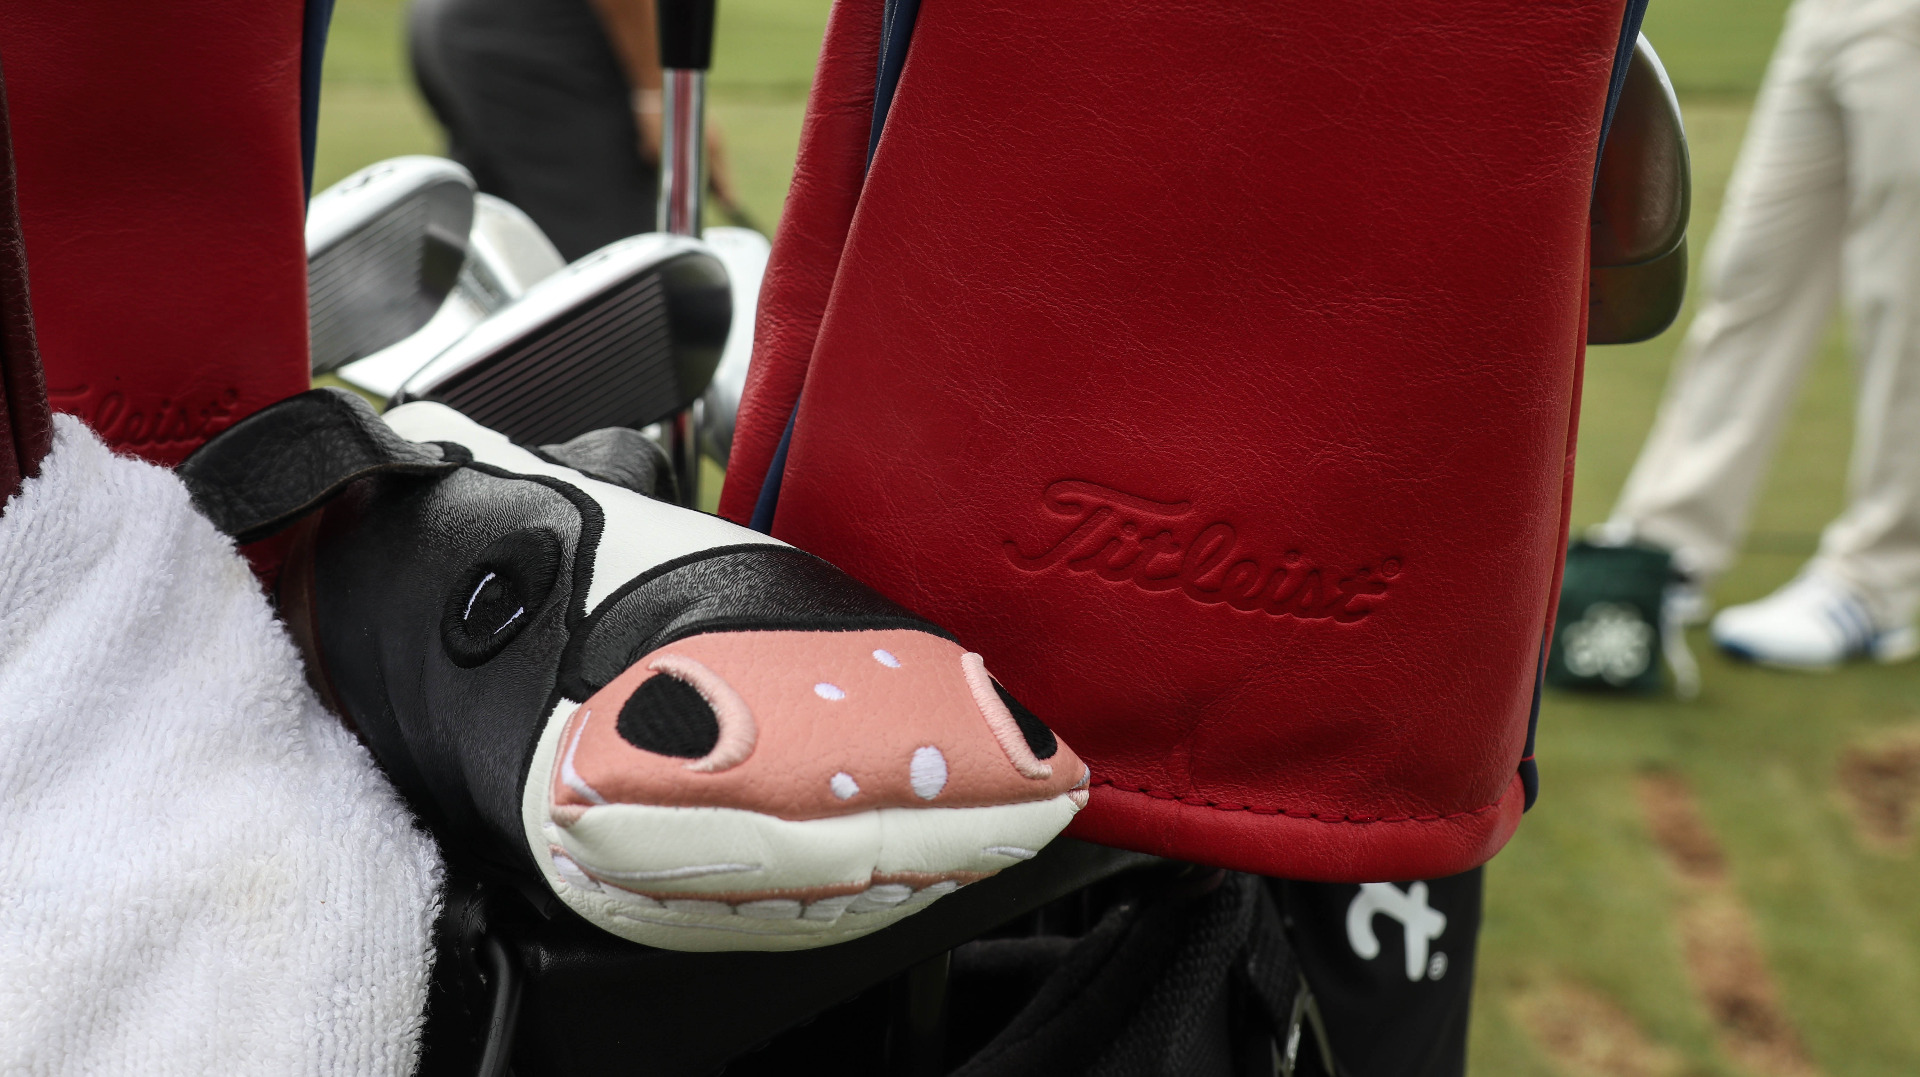 A look inside Bud's Titleist bag to see the de...